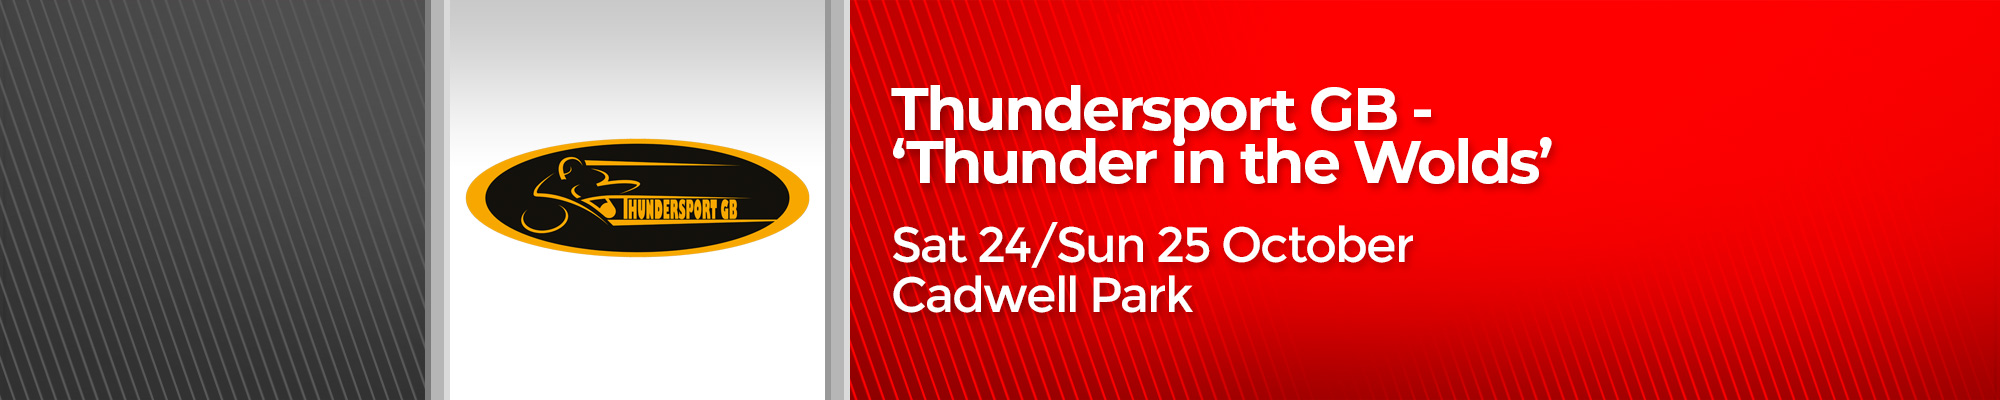 Thundersport GB - Thunder in the Wolds